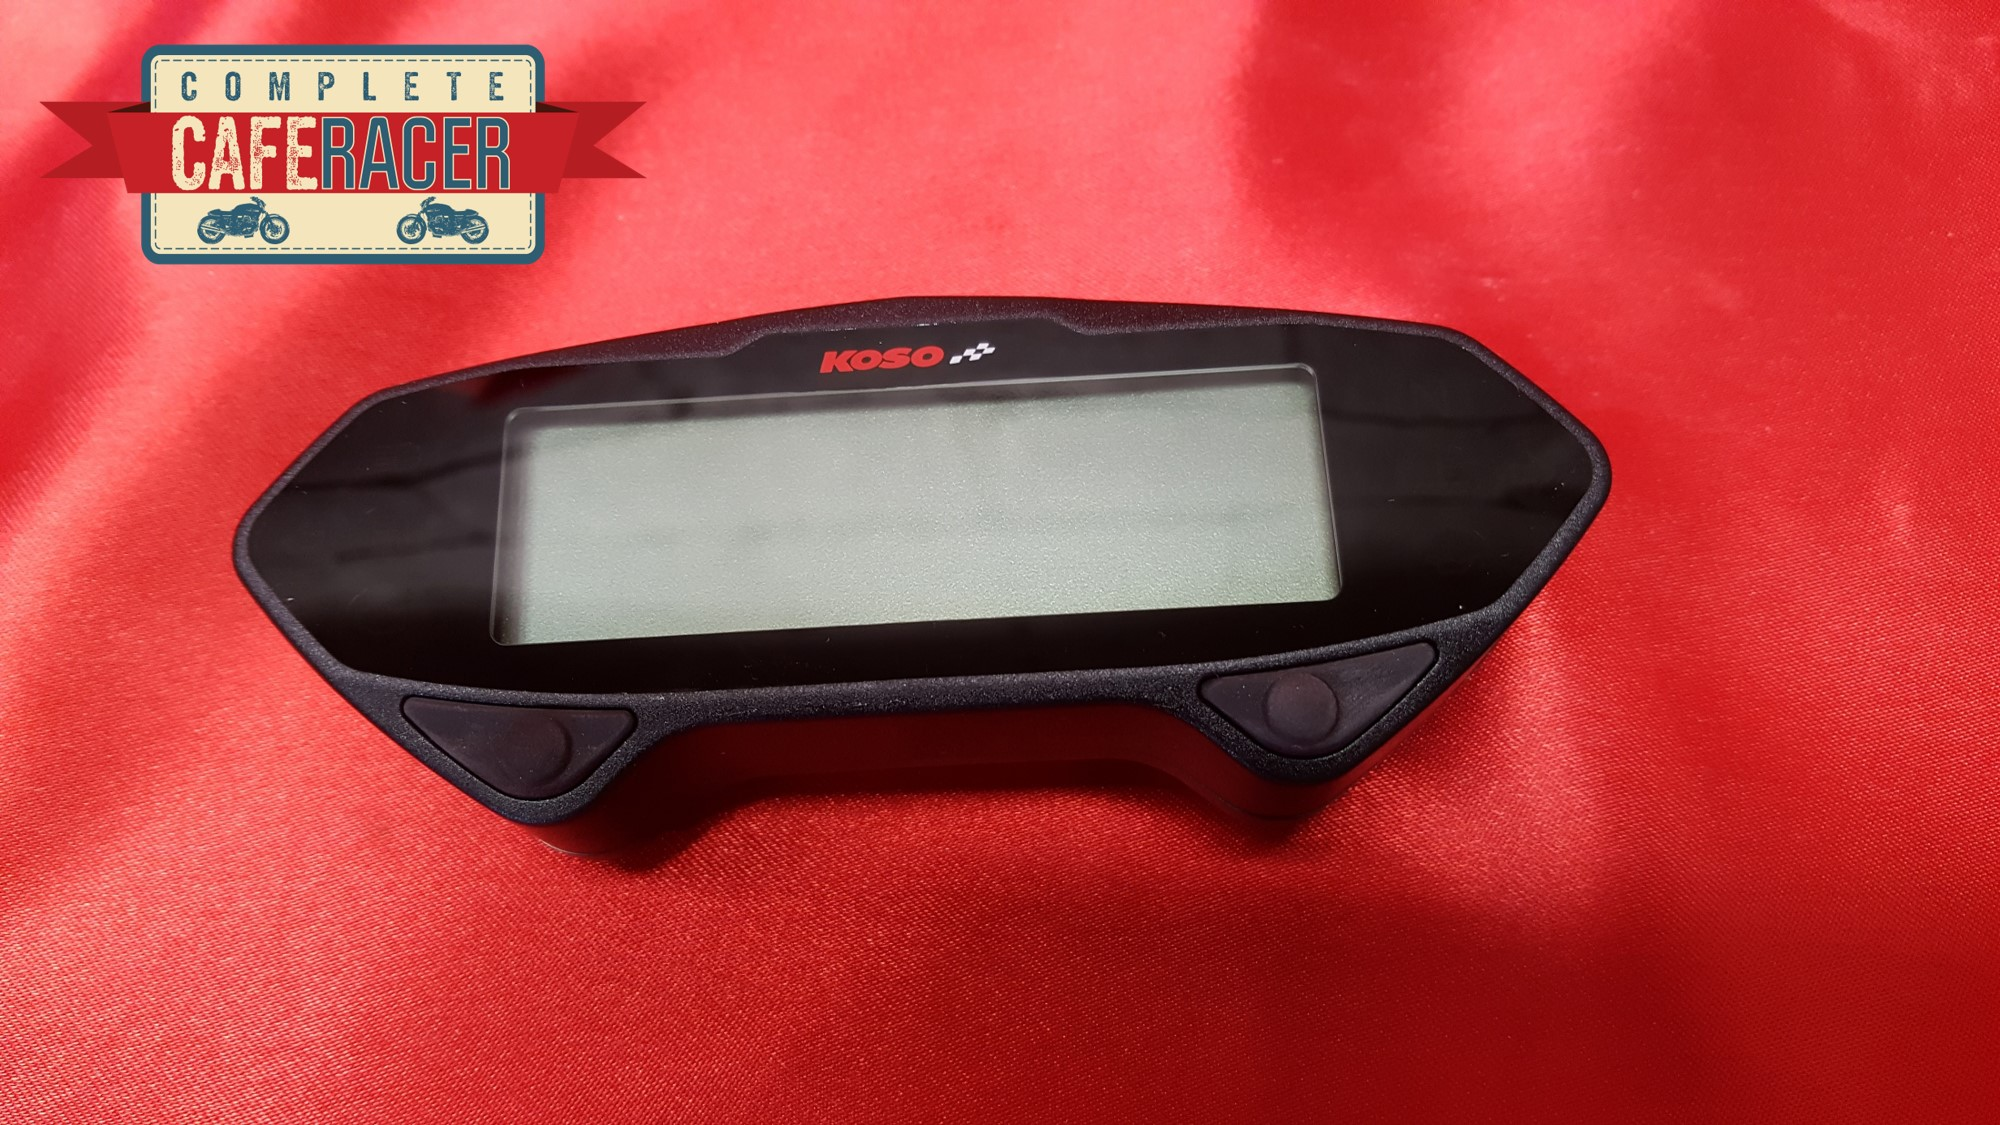 CAFE RACER KOSO DB-01RN MULTI FUNCTION DIGITAL SPEEDO